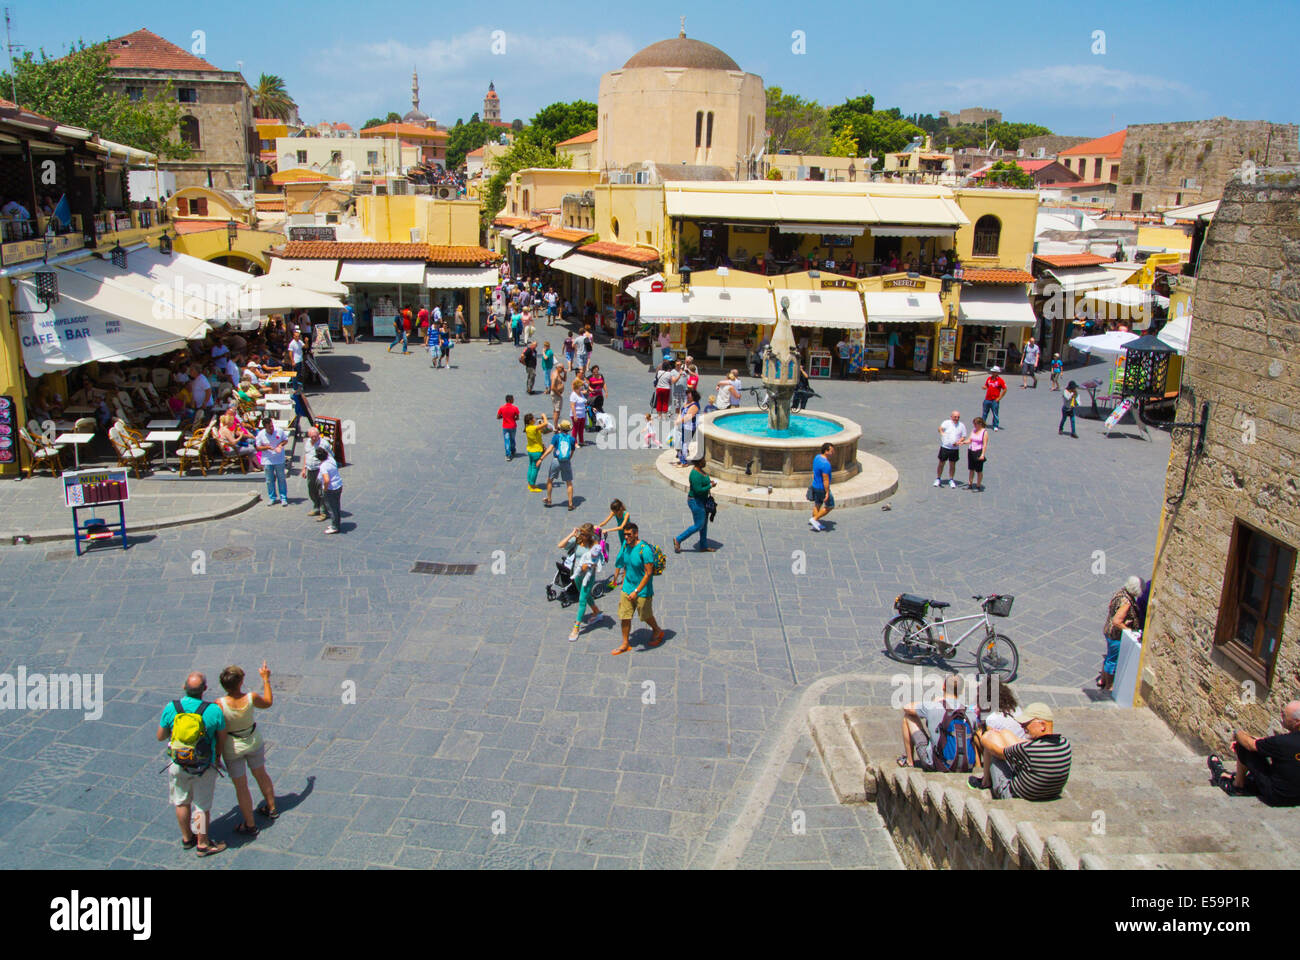 Hippocratous square, old town, Rhodes town, Rhodes island, Dodecanese islands, Greece, Europe - Stock Image